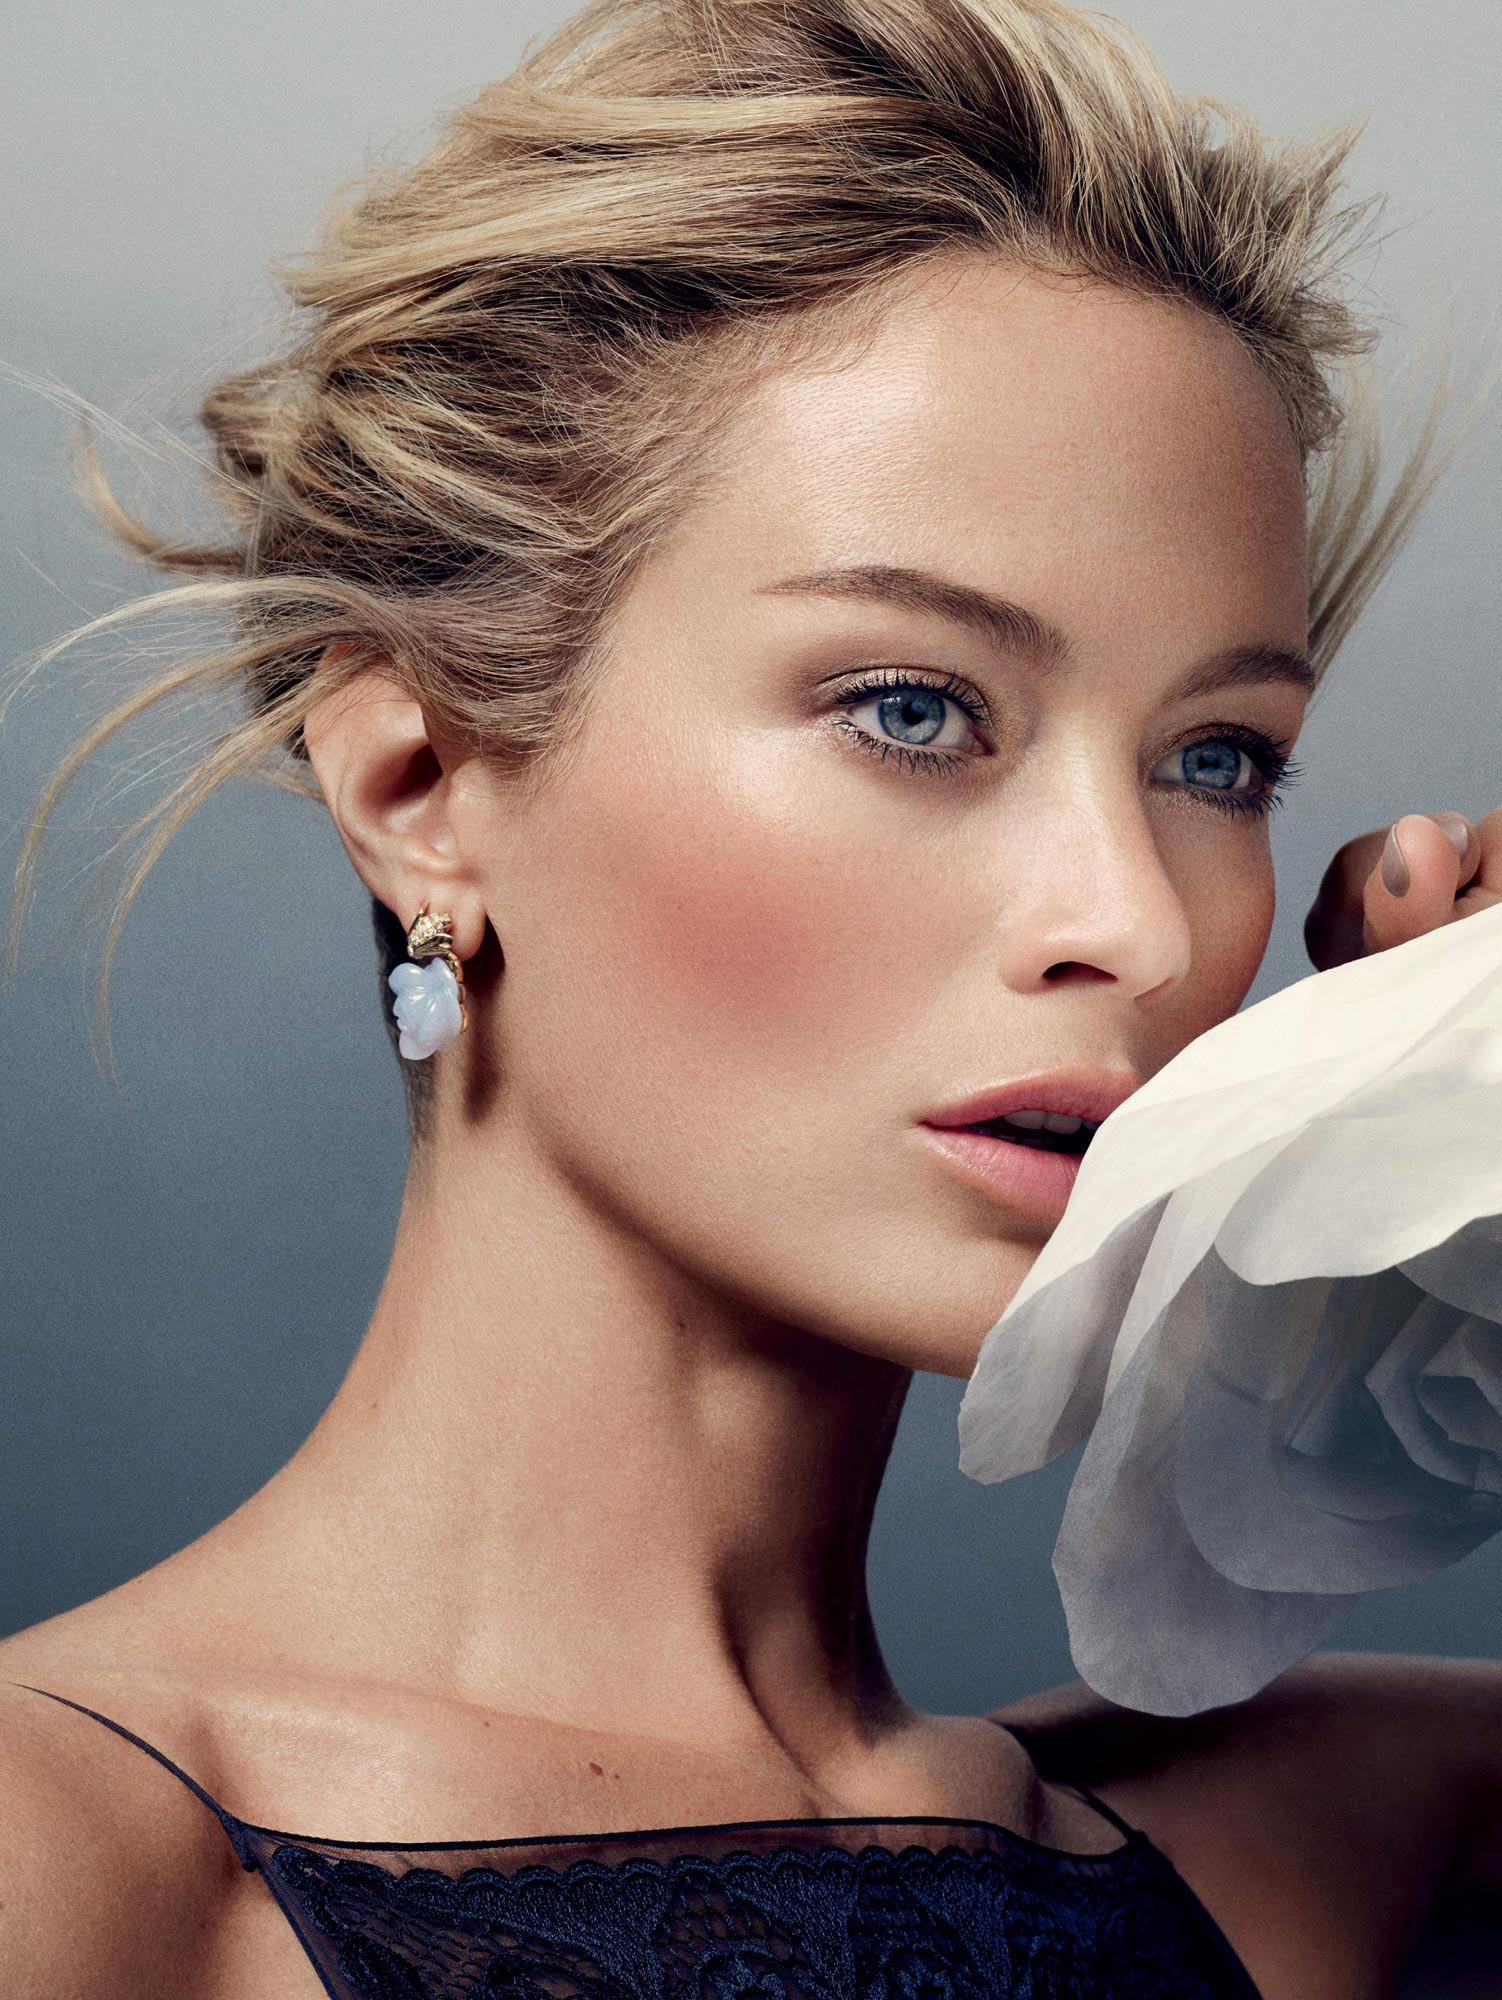 Celebrites Carolyn Murphy naked (49 photo), Topless, Leaked, Instagram, swimsuit 2015